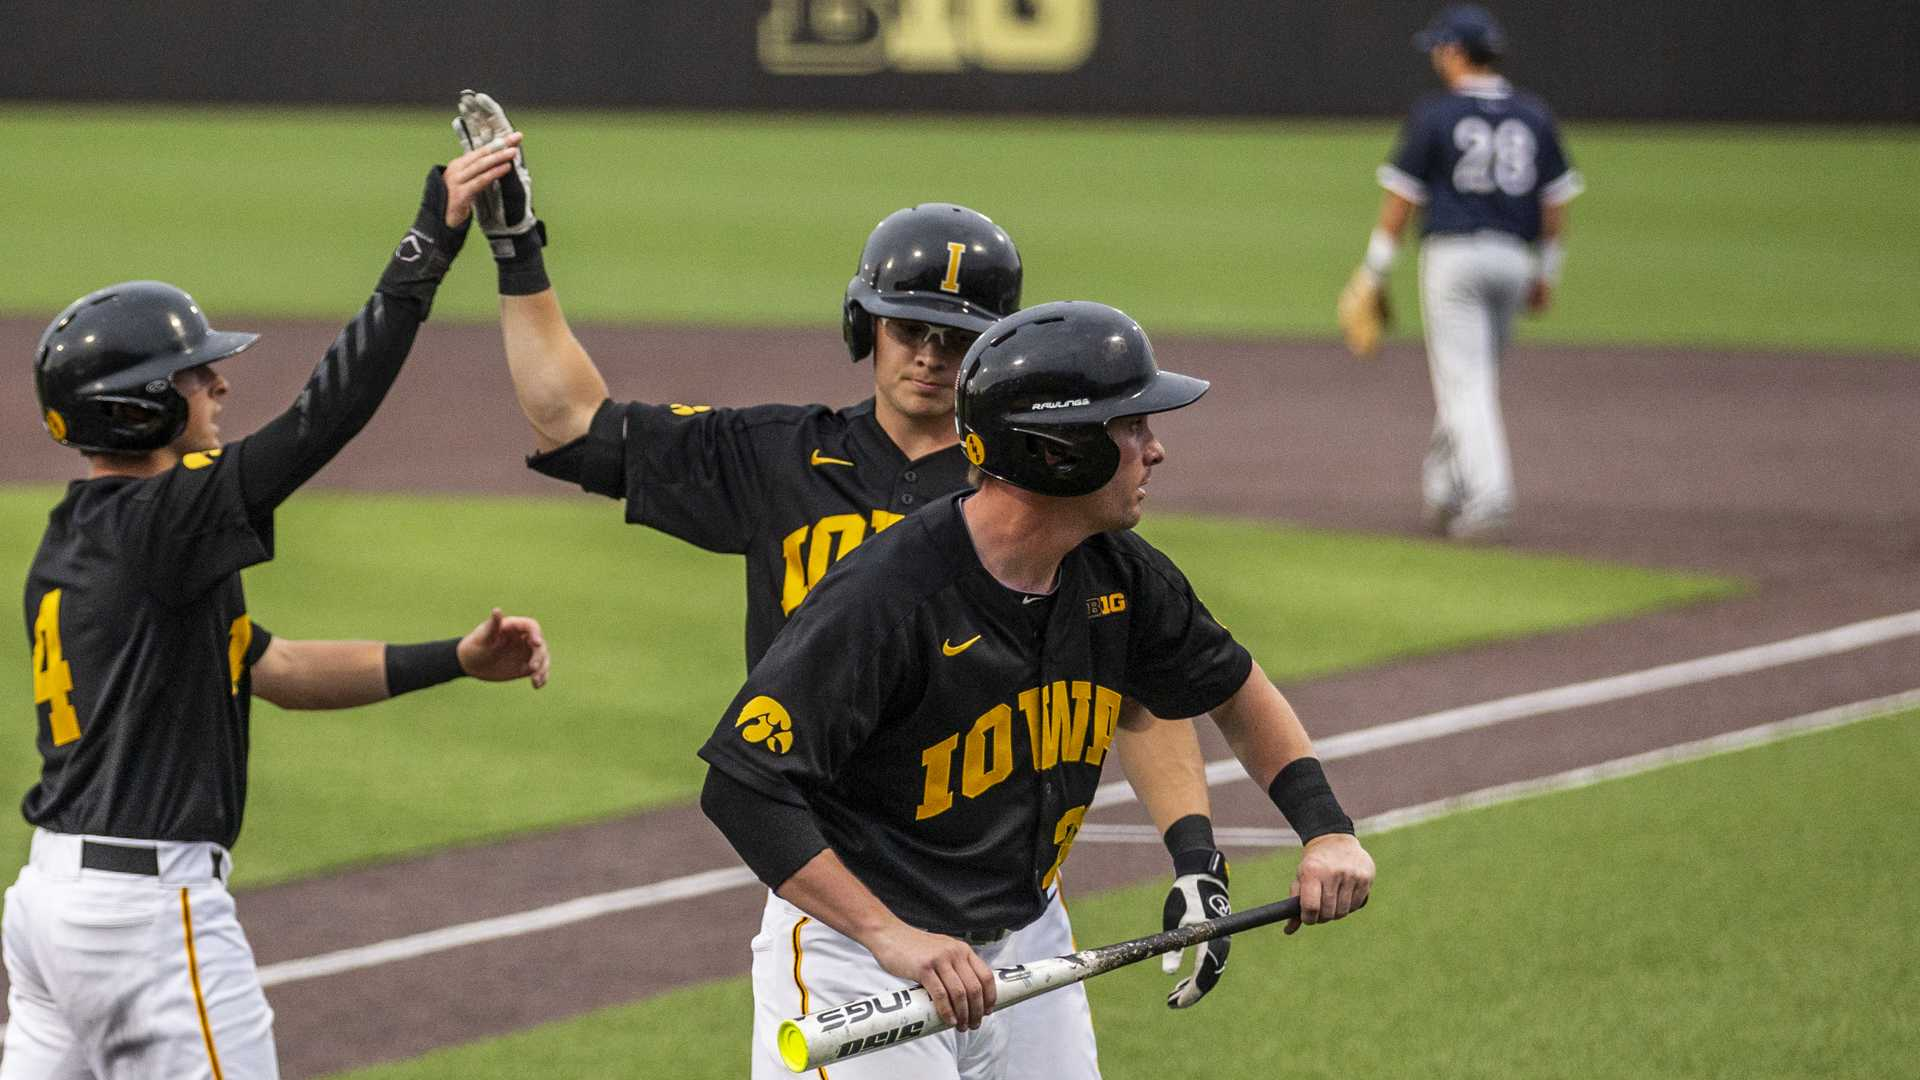 The Hawkeyes celebrate after scoring to take the lead during their game against Penn State at Duane Banks Field on Friday May 18, 2018. The Hawkeyes defeated the Nitany Lions 9-1. (Nick Rohlman/The Daily Iowan)